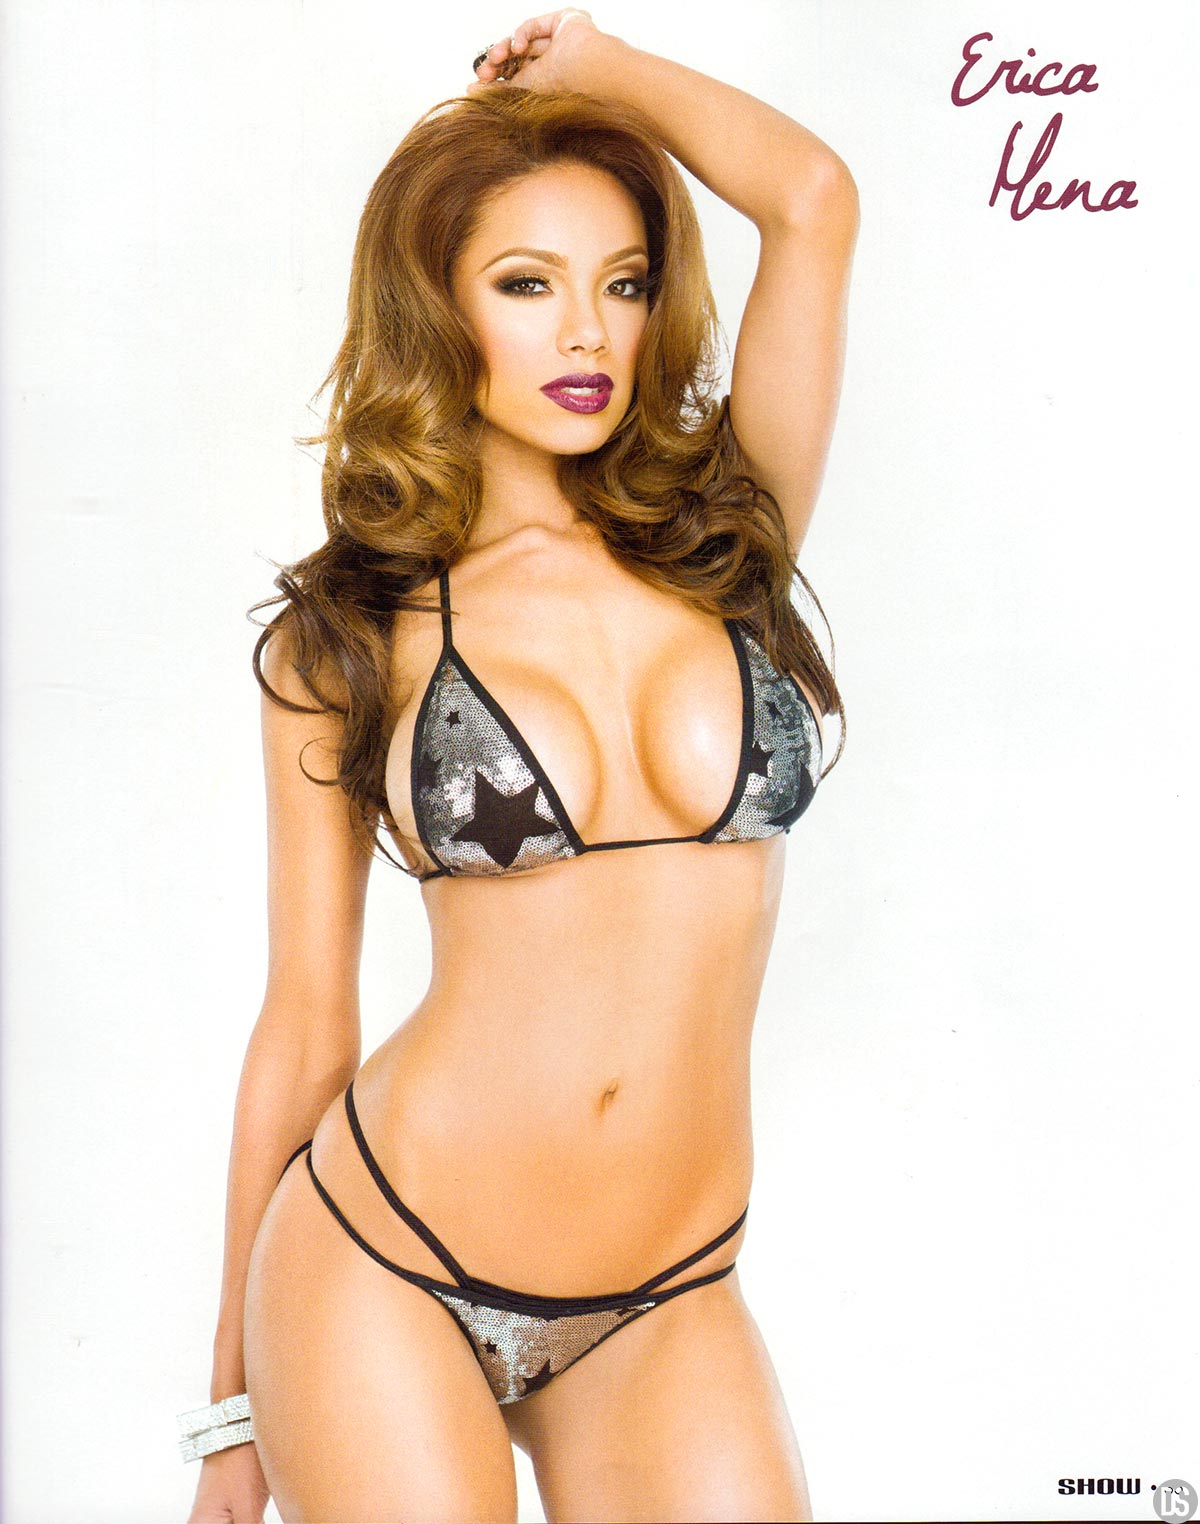 DYNASTY BLACK LINGERIE By SHOW Magazine Issue 5 Cover 3 of 4